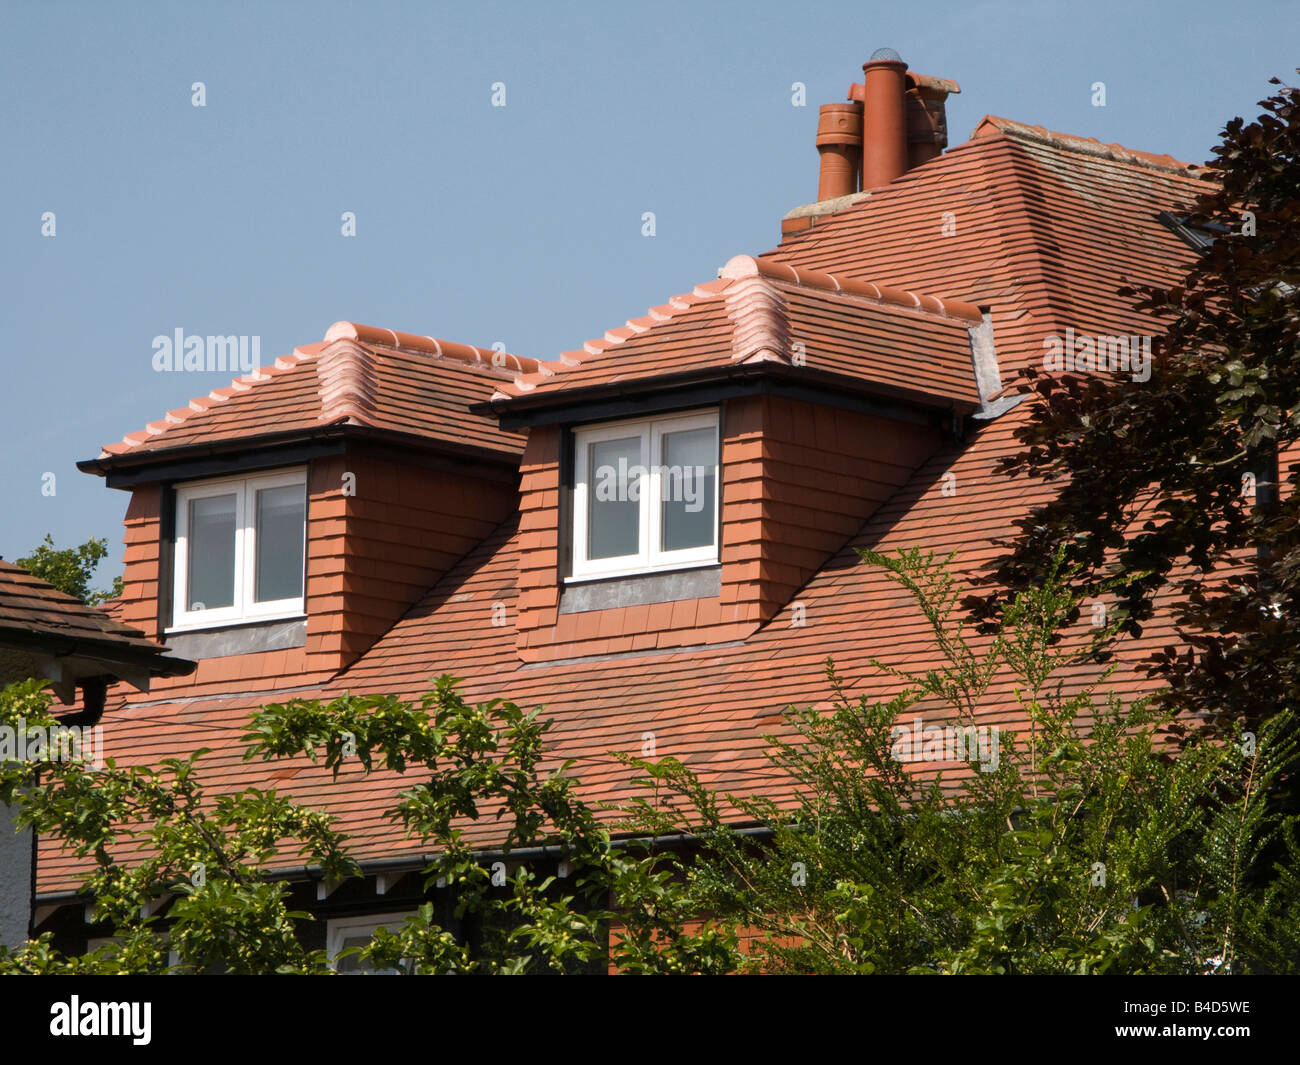 House Improvements Dormer Windows In Roof Extension Of Edwardian Surbuban